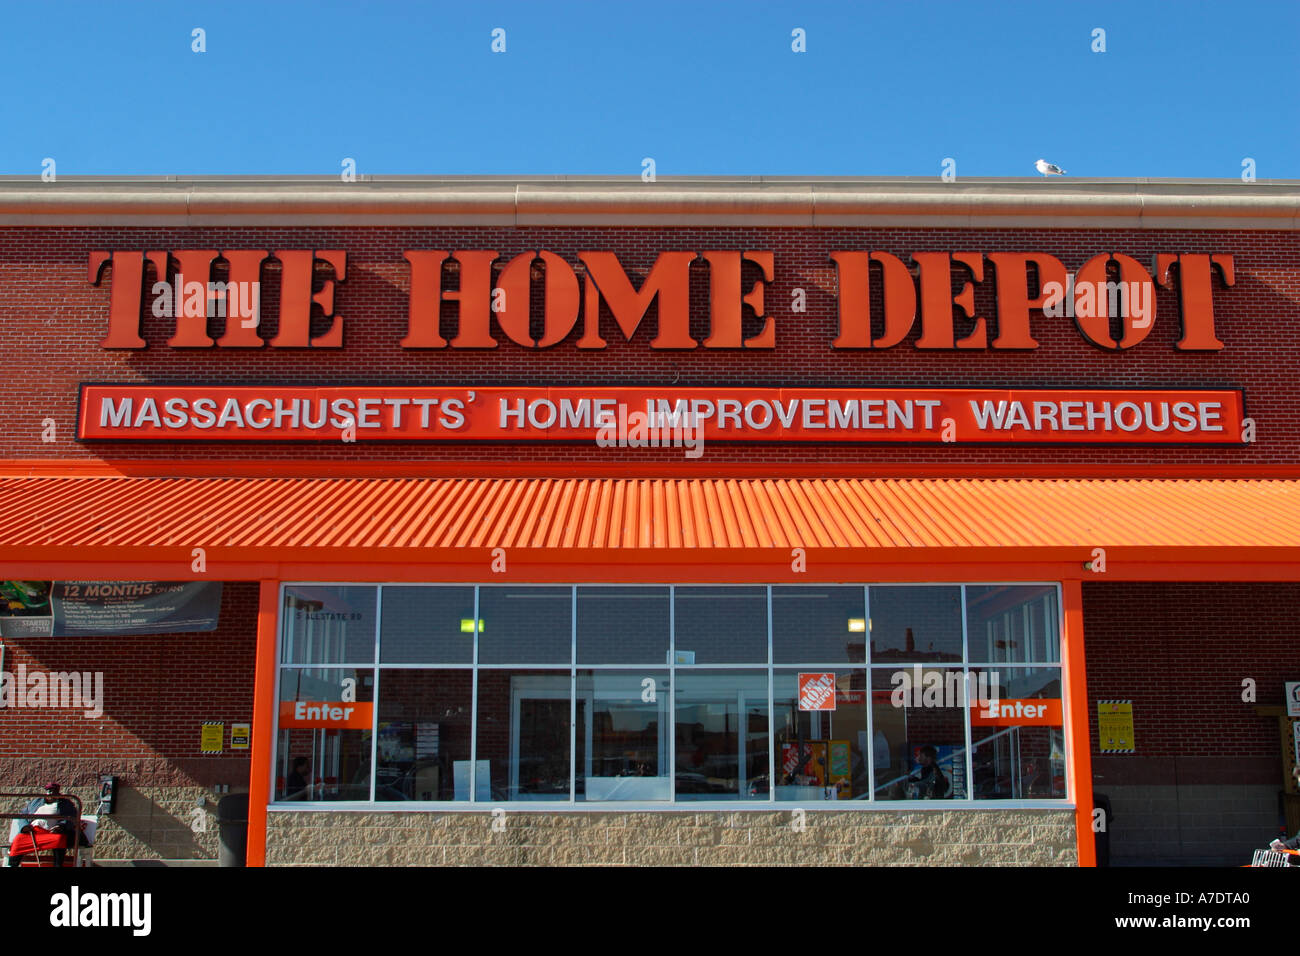 Hardware store and home depot stock photos hardware store and home depot stock images alamy for Exterior home improvement indianapolis